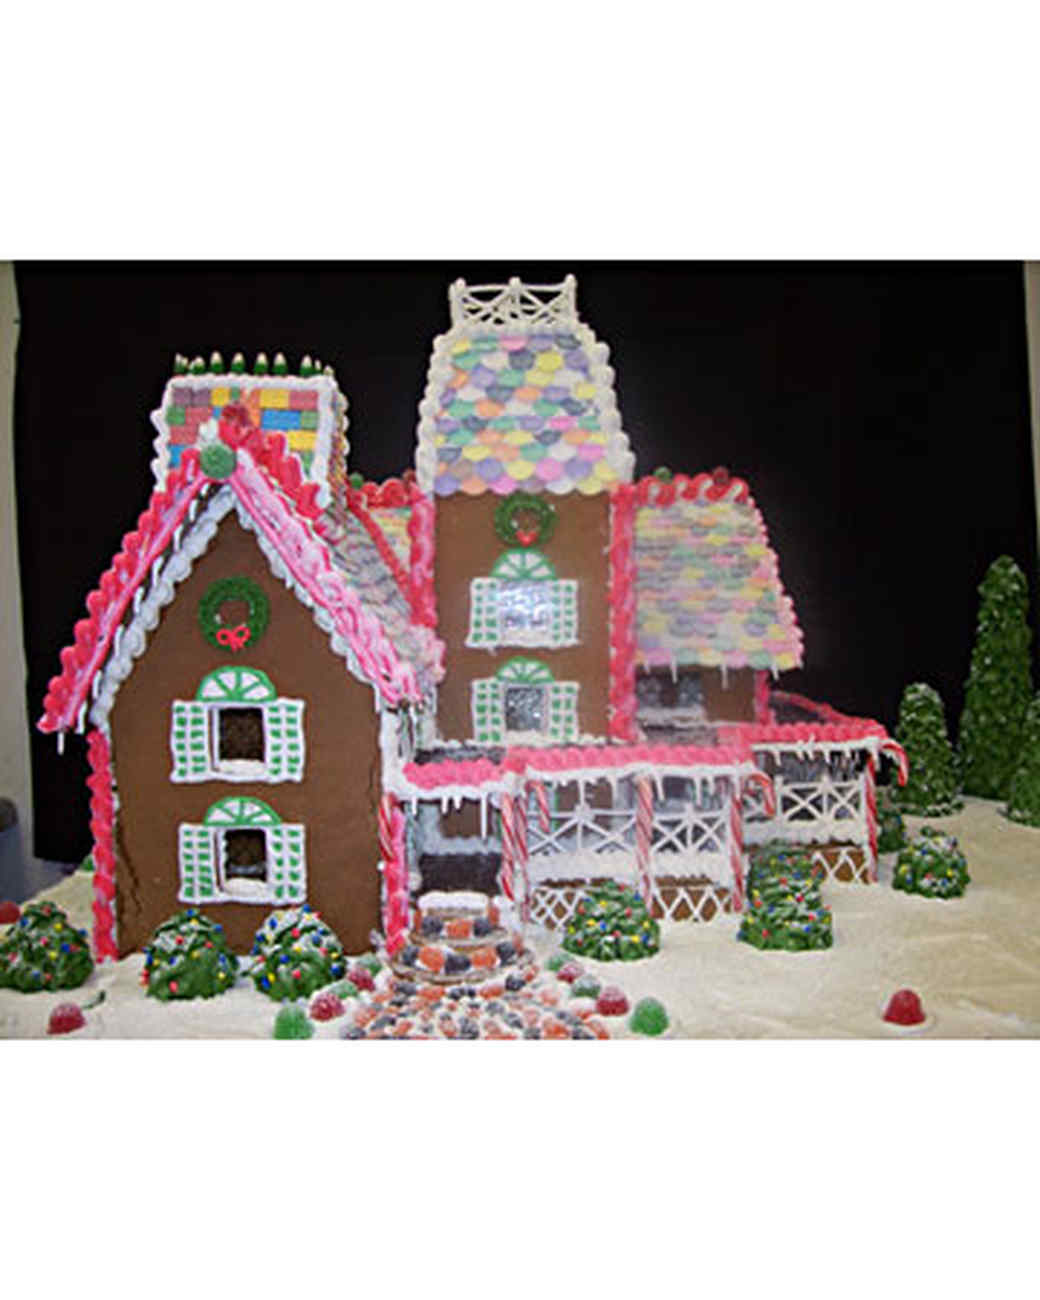 Dazzling Ugc Gingerbread 2010 6903266 18687325 Xl Gingerbread House Decorations Gingerbread House Decorations Sale decor Gingerbread House Decorations